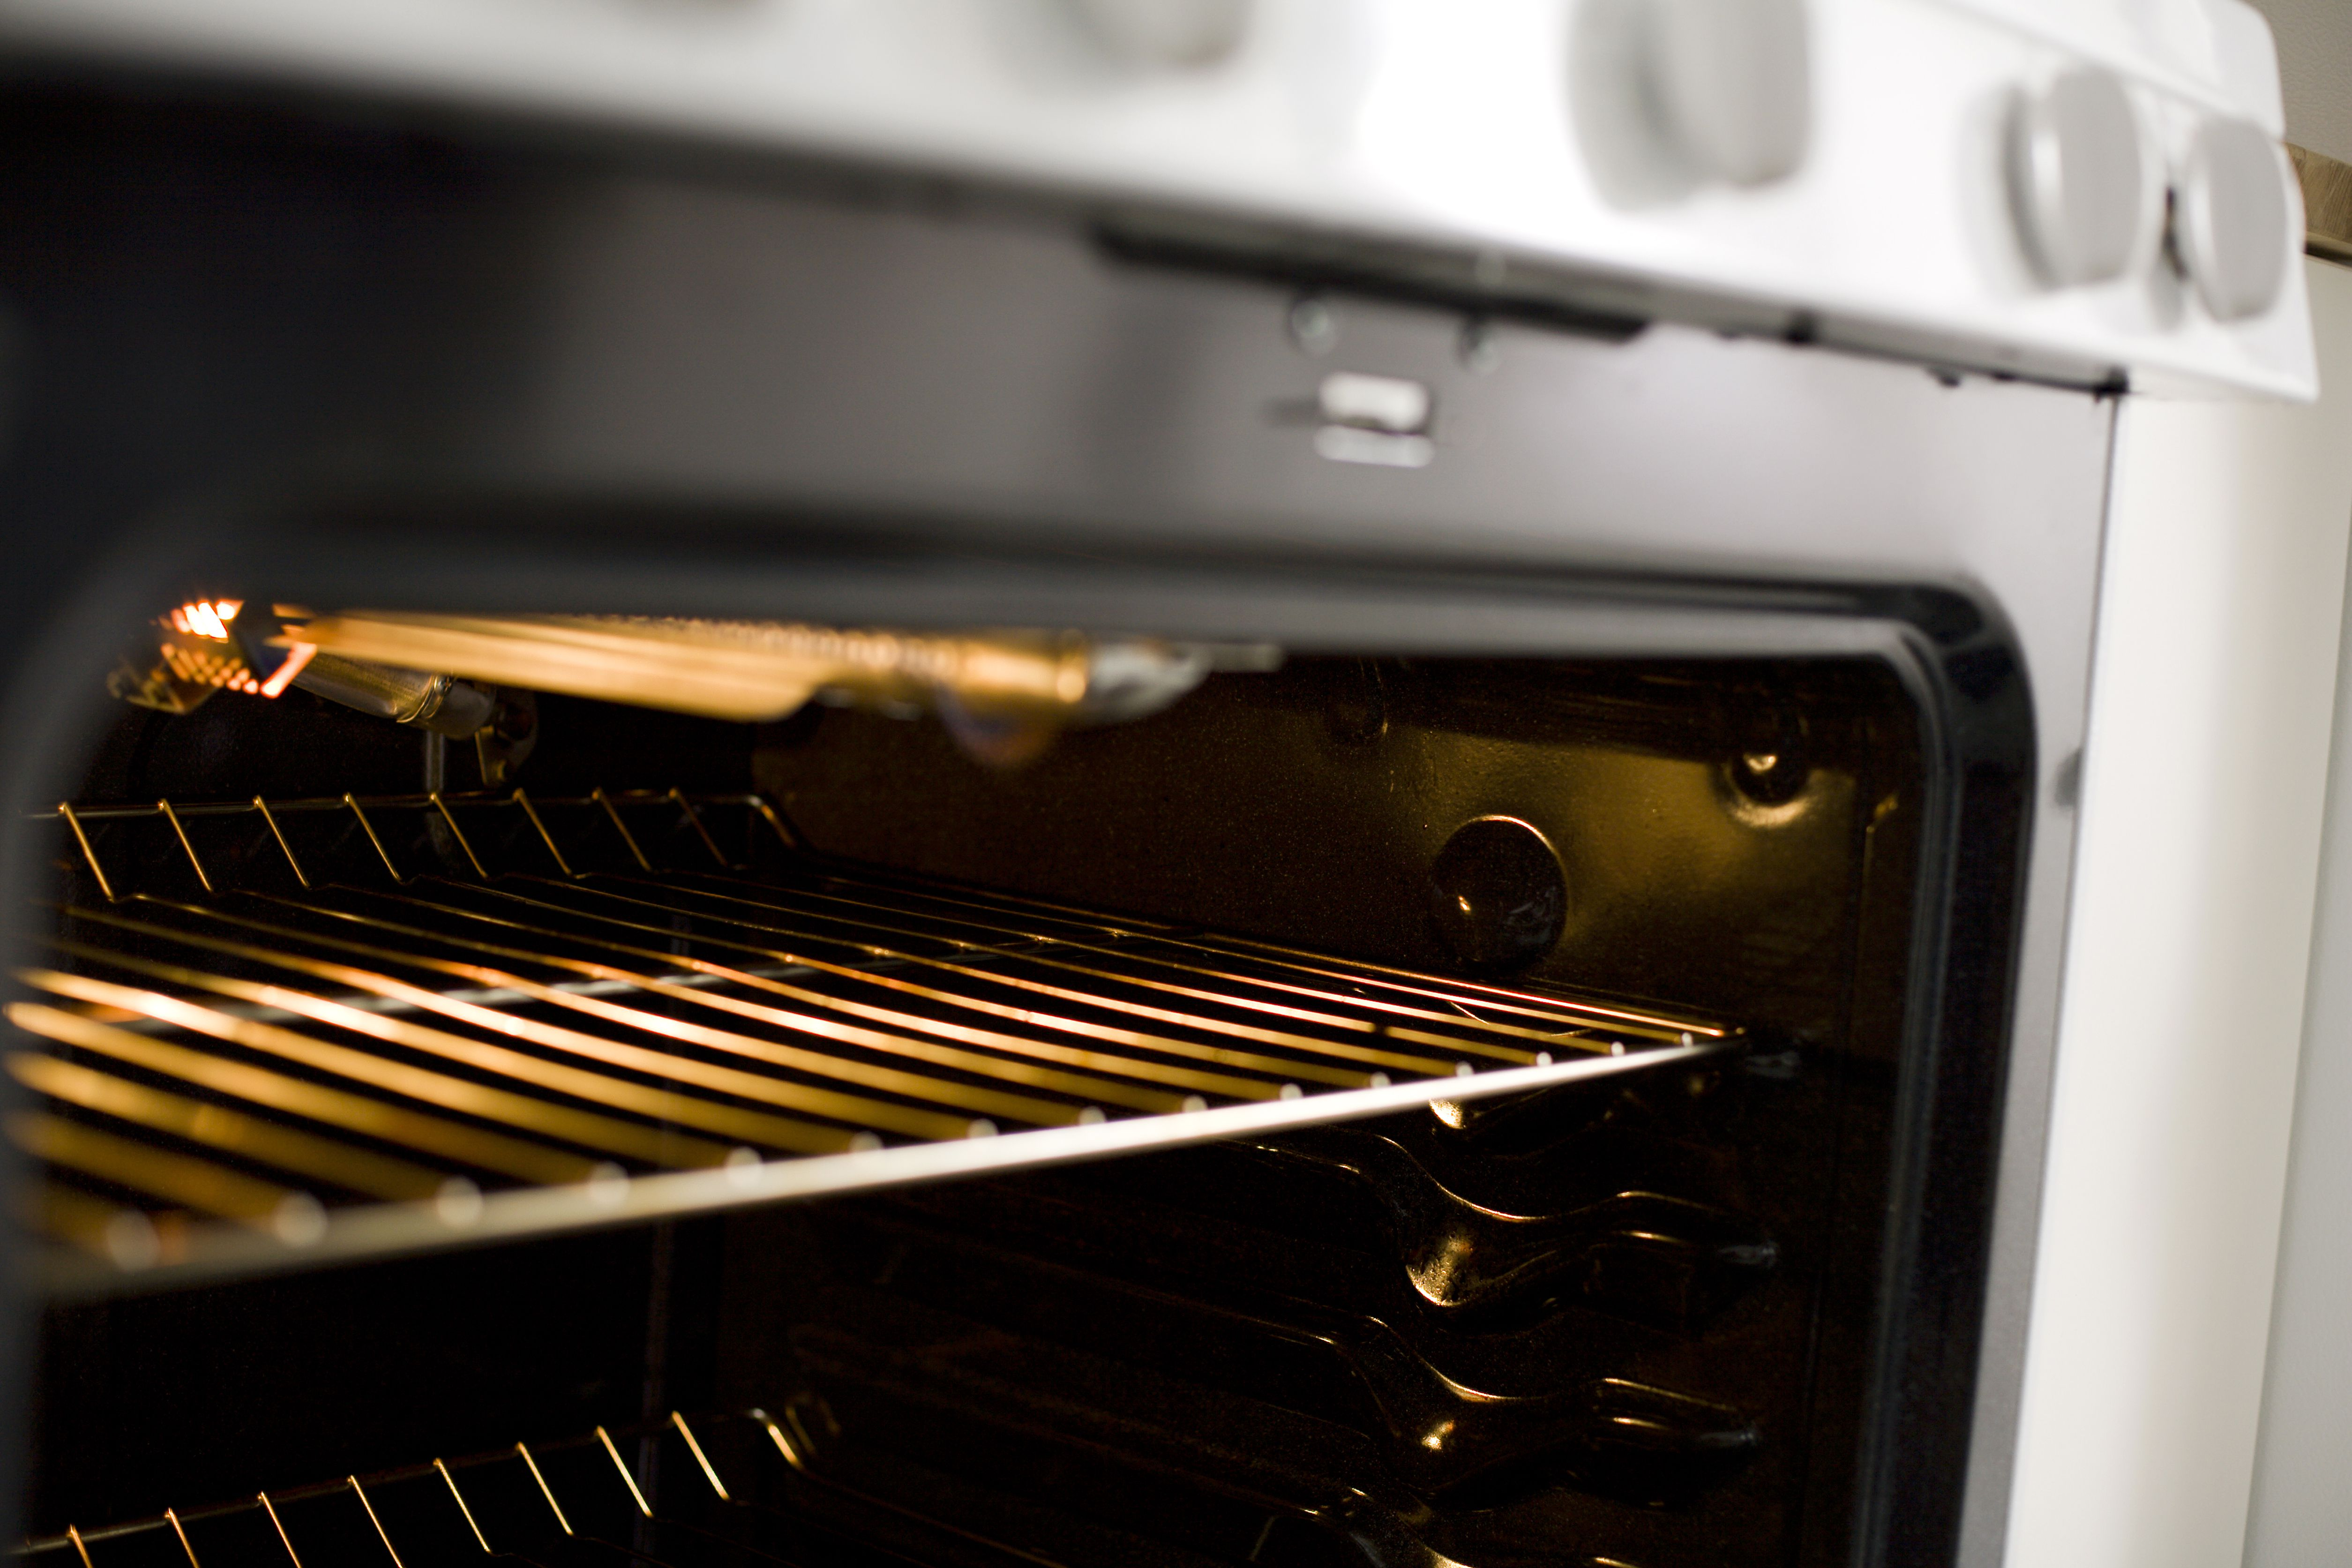 How Does A Self Cleaning Oven Compare With An Easy Clean Oven